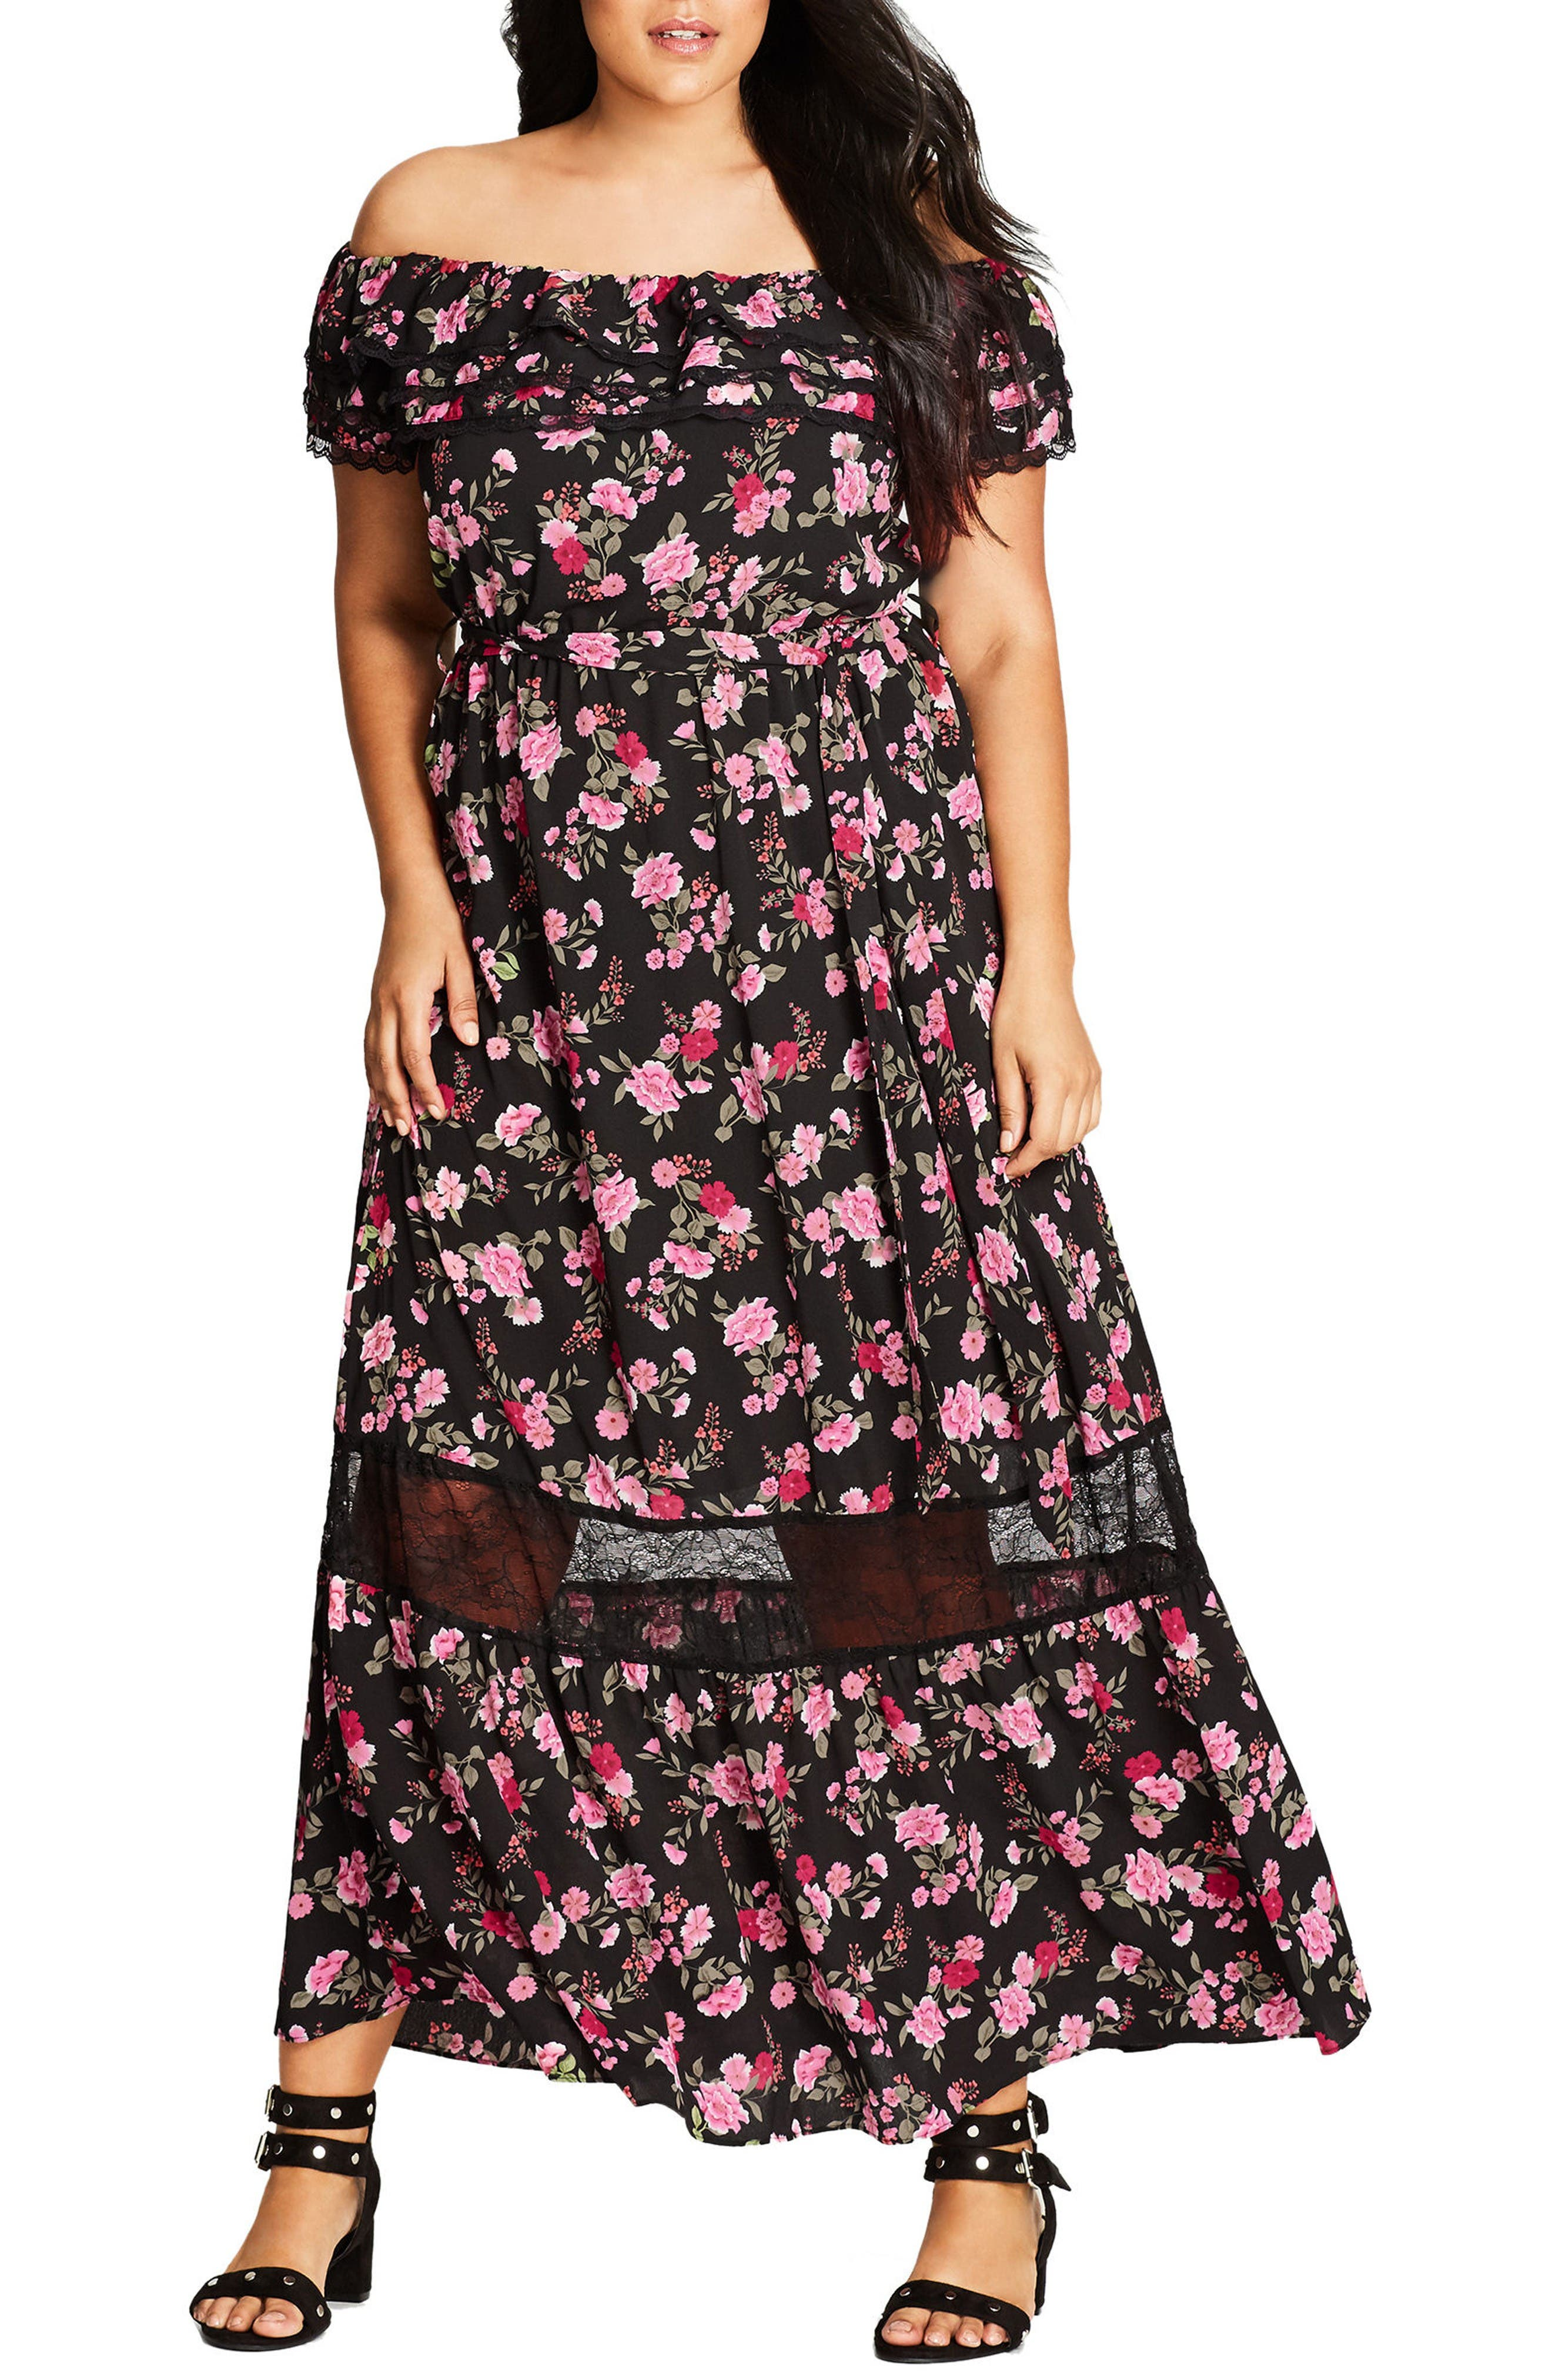 Alternate Image 1 Selected - City Chic Free Love Floral Off the Shoulder Maxi Dress (Plus Size)